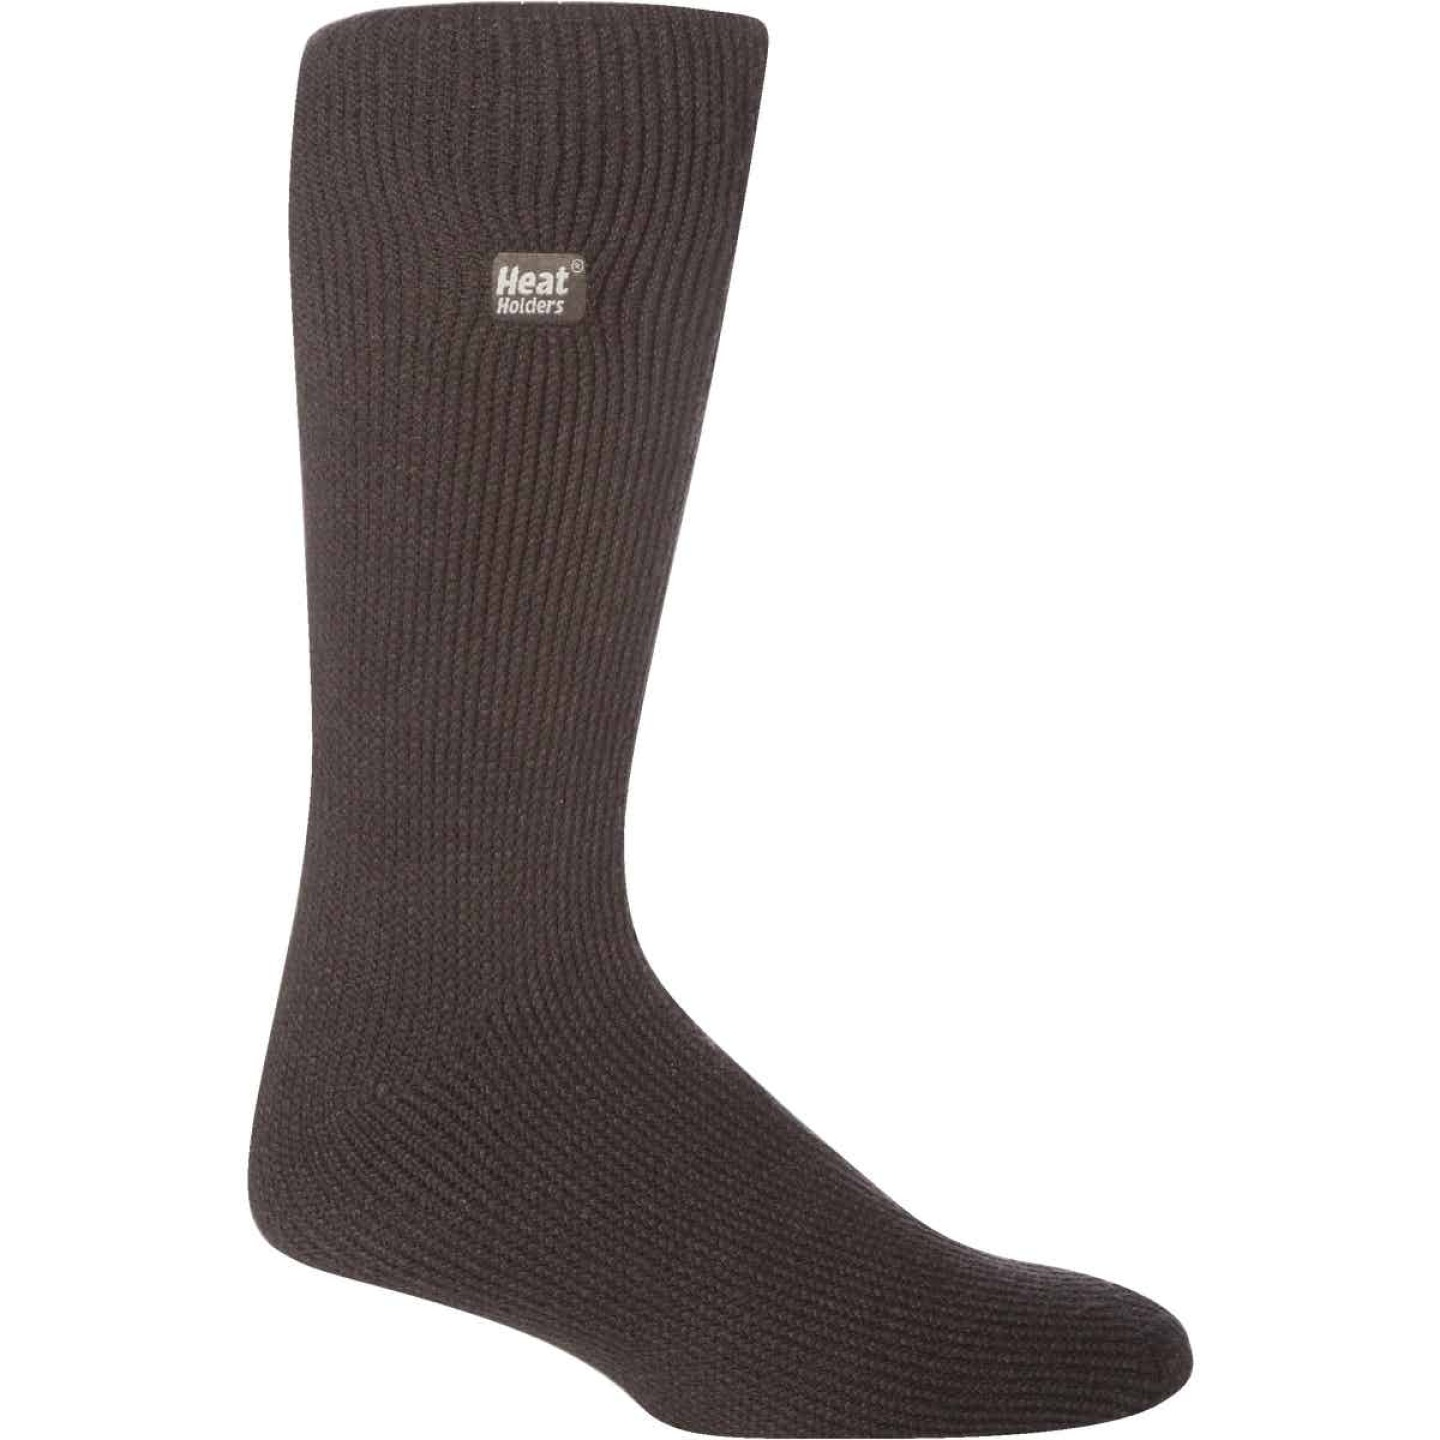 Heat Holders Men's 7 to 12 Charcoal Thermal Sock Image 1